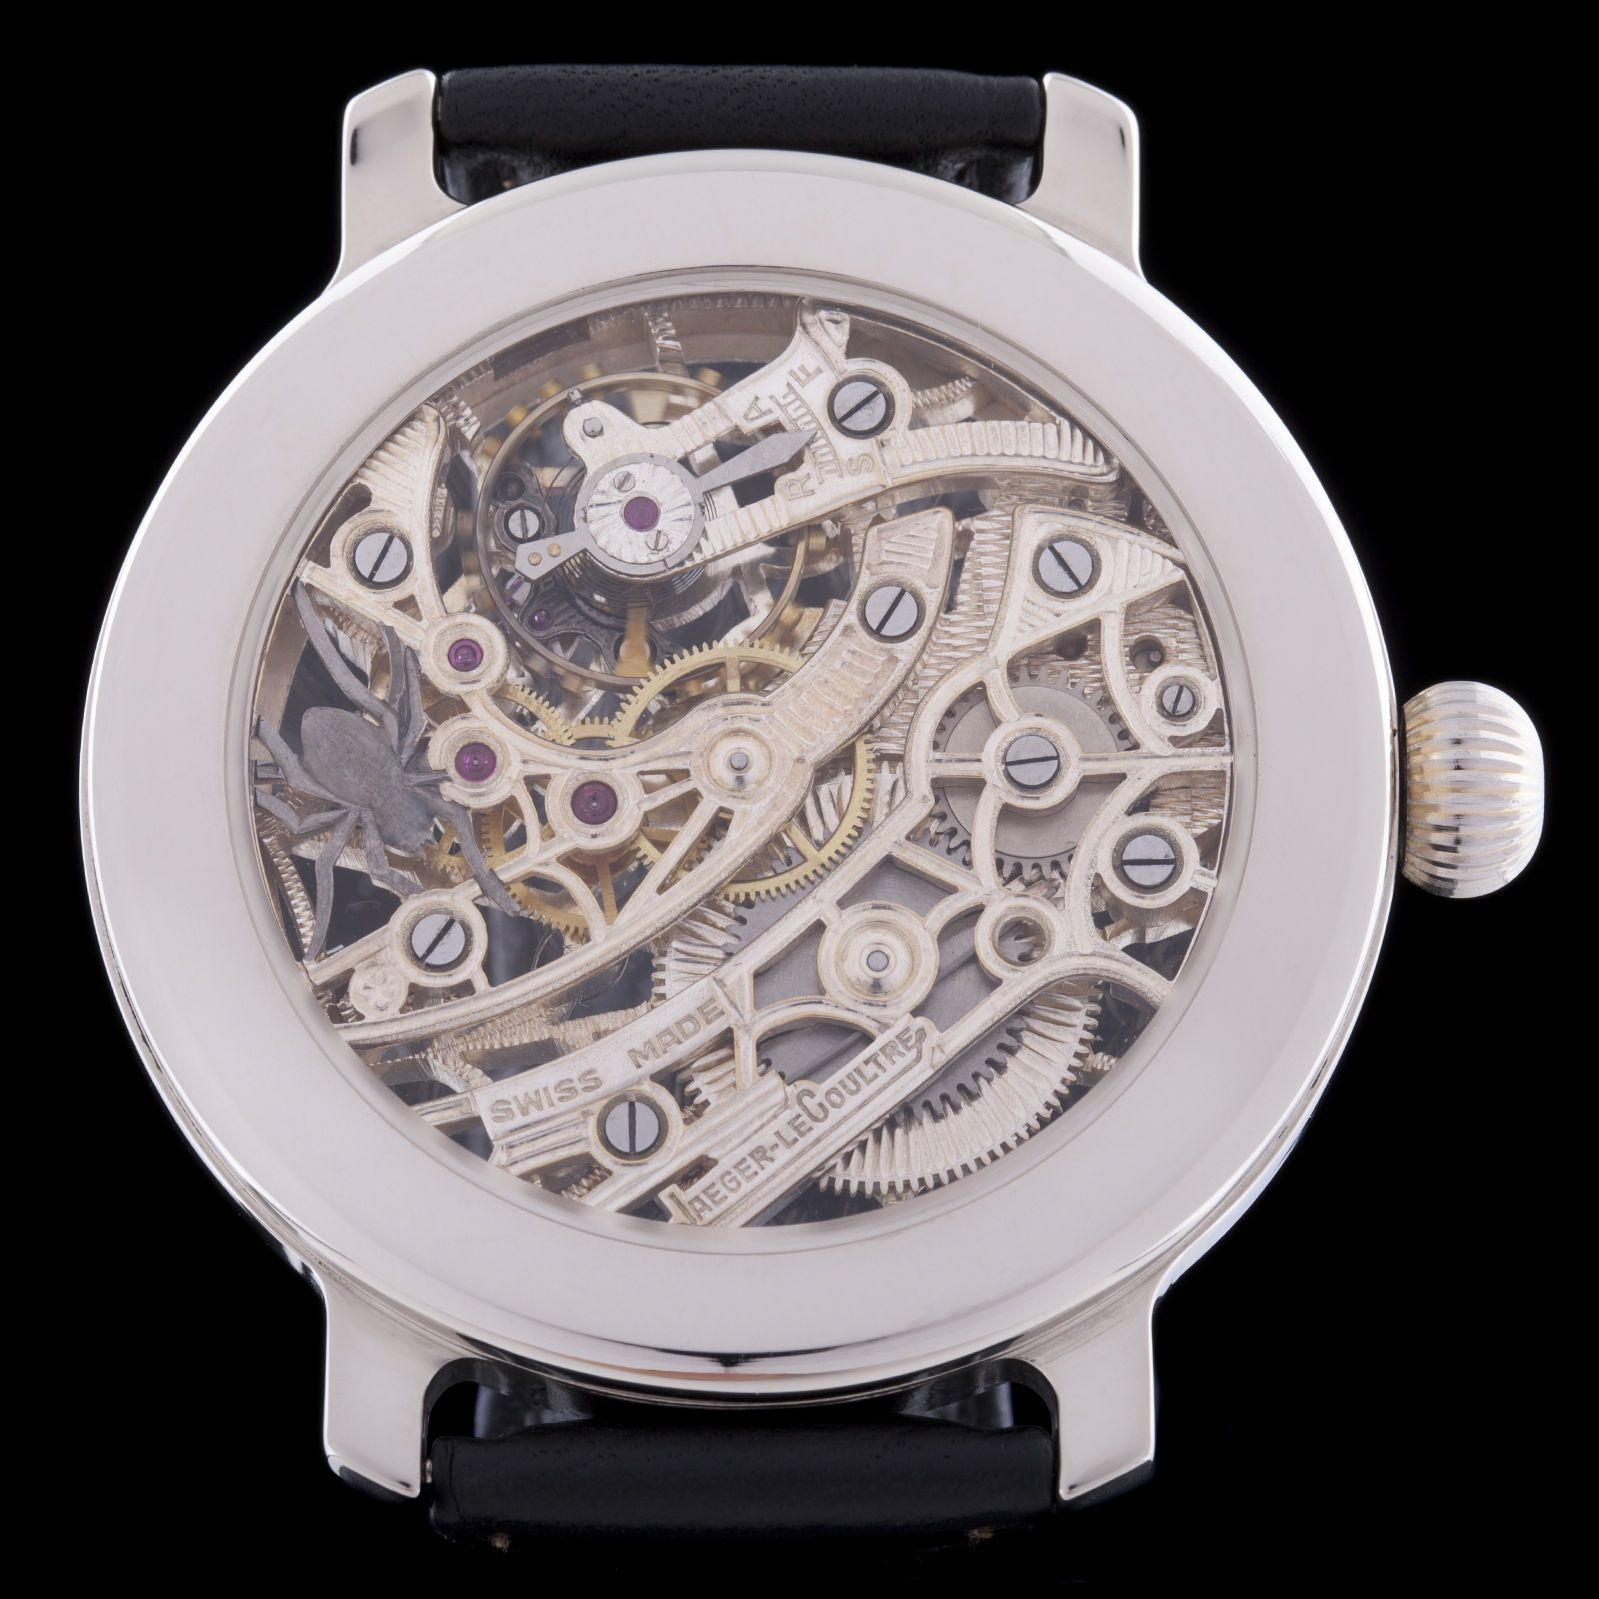 pocket watch movement diagram wiring for square d lighting contactors jaeger lecoultre mens skeleton spiderweb engraving swiss